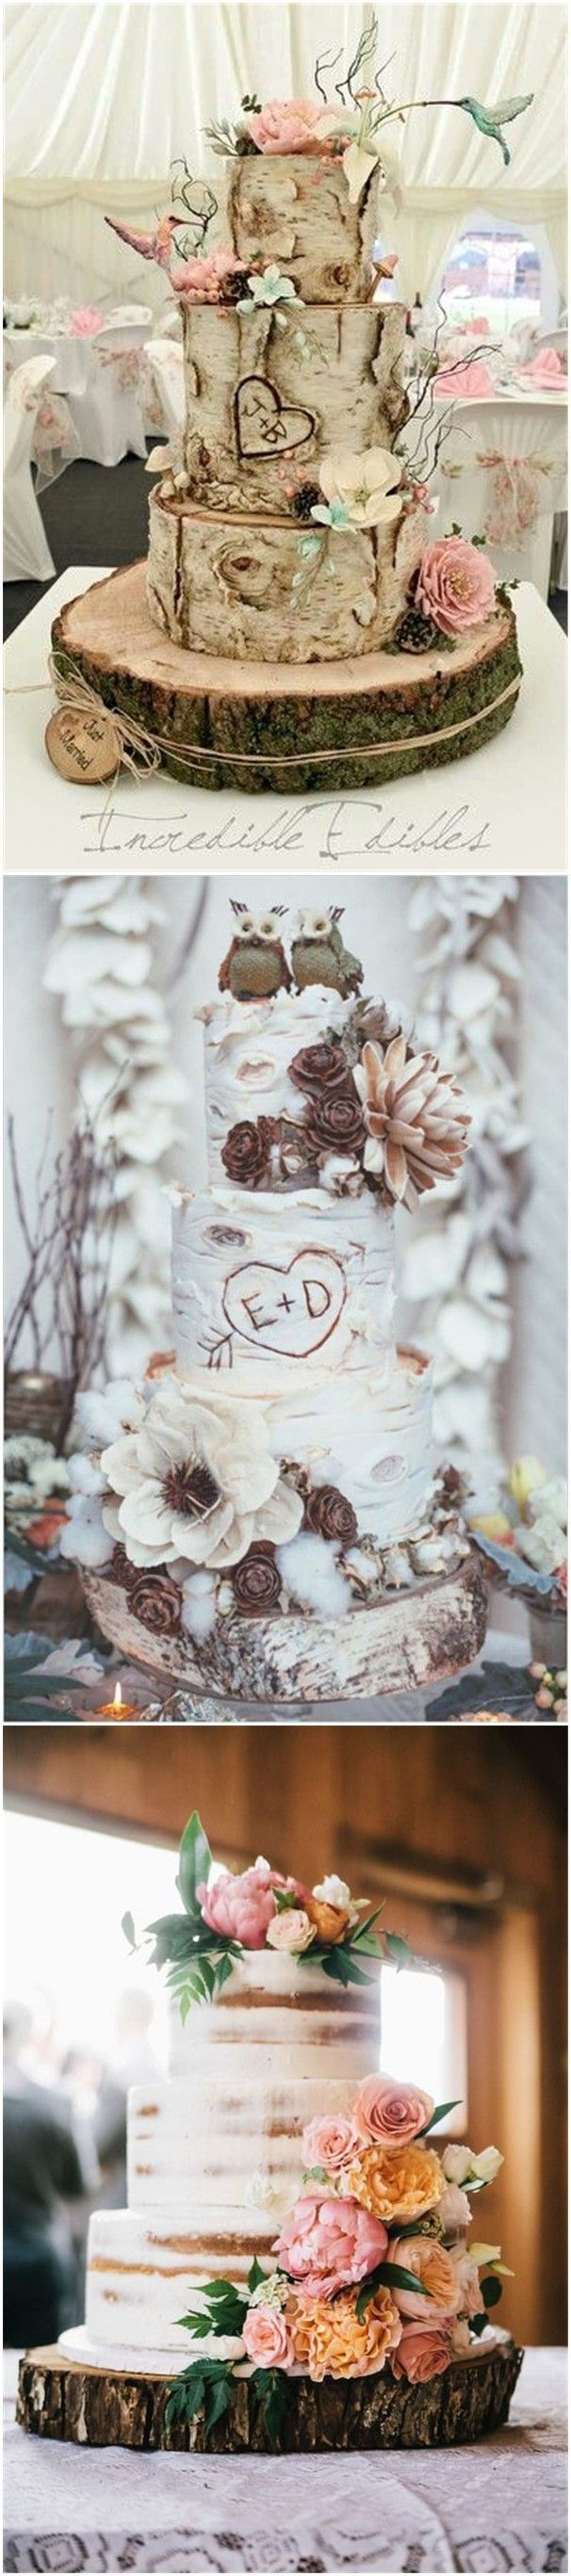 rustic tree stumps wedding cakes for your country wedding tree